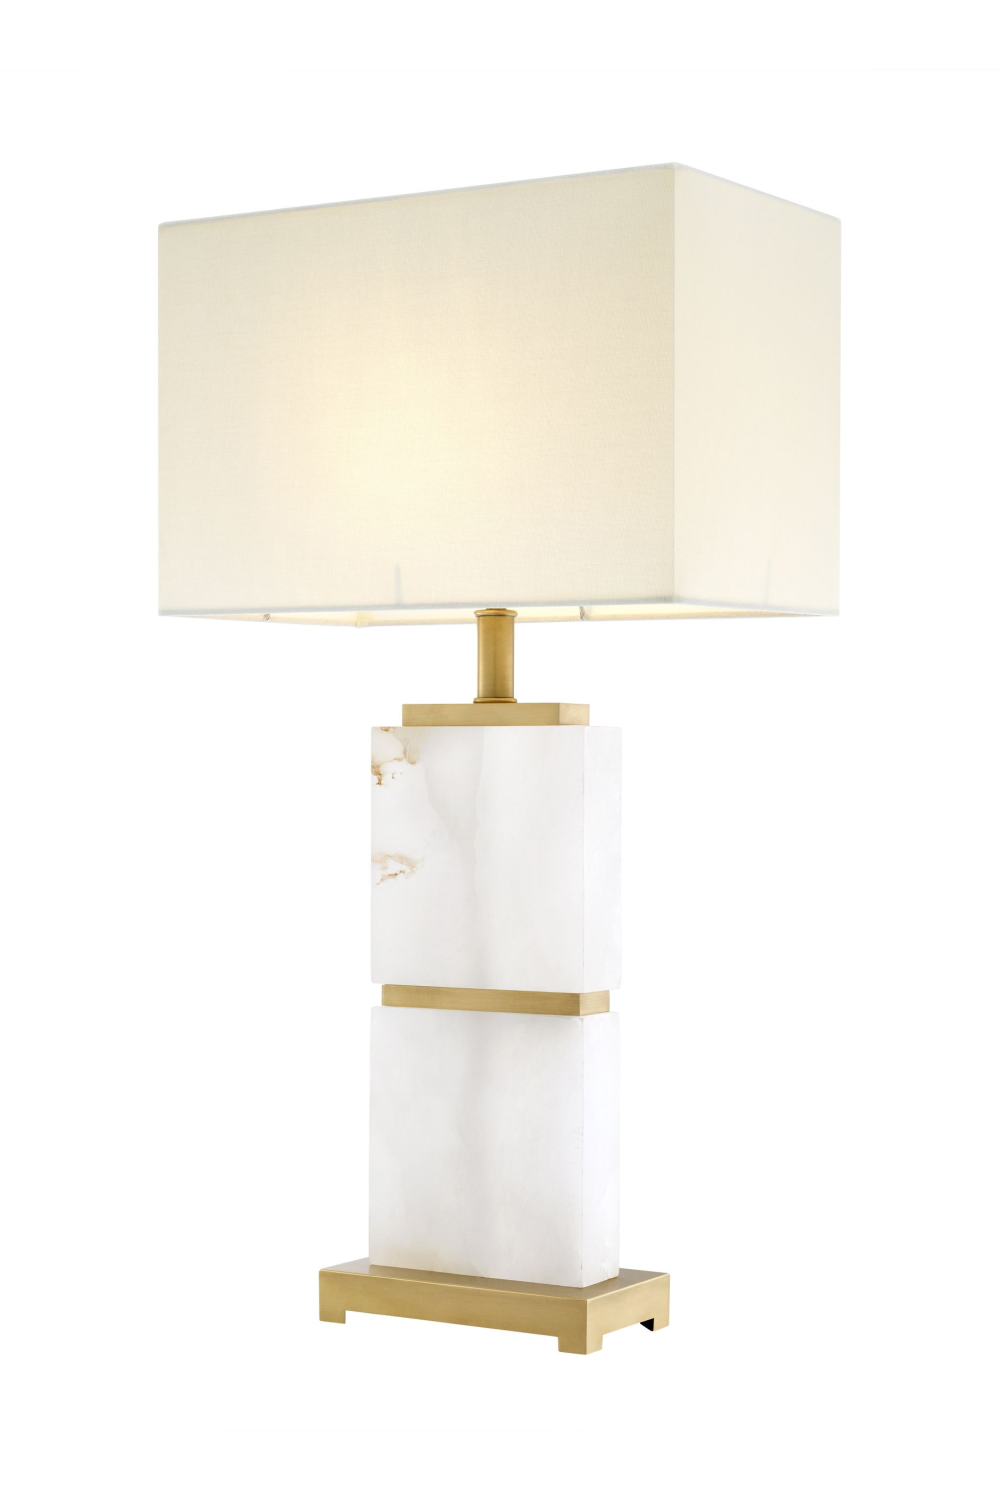 Alabaster White Marble Table Lamp | Eichholtz Robbins